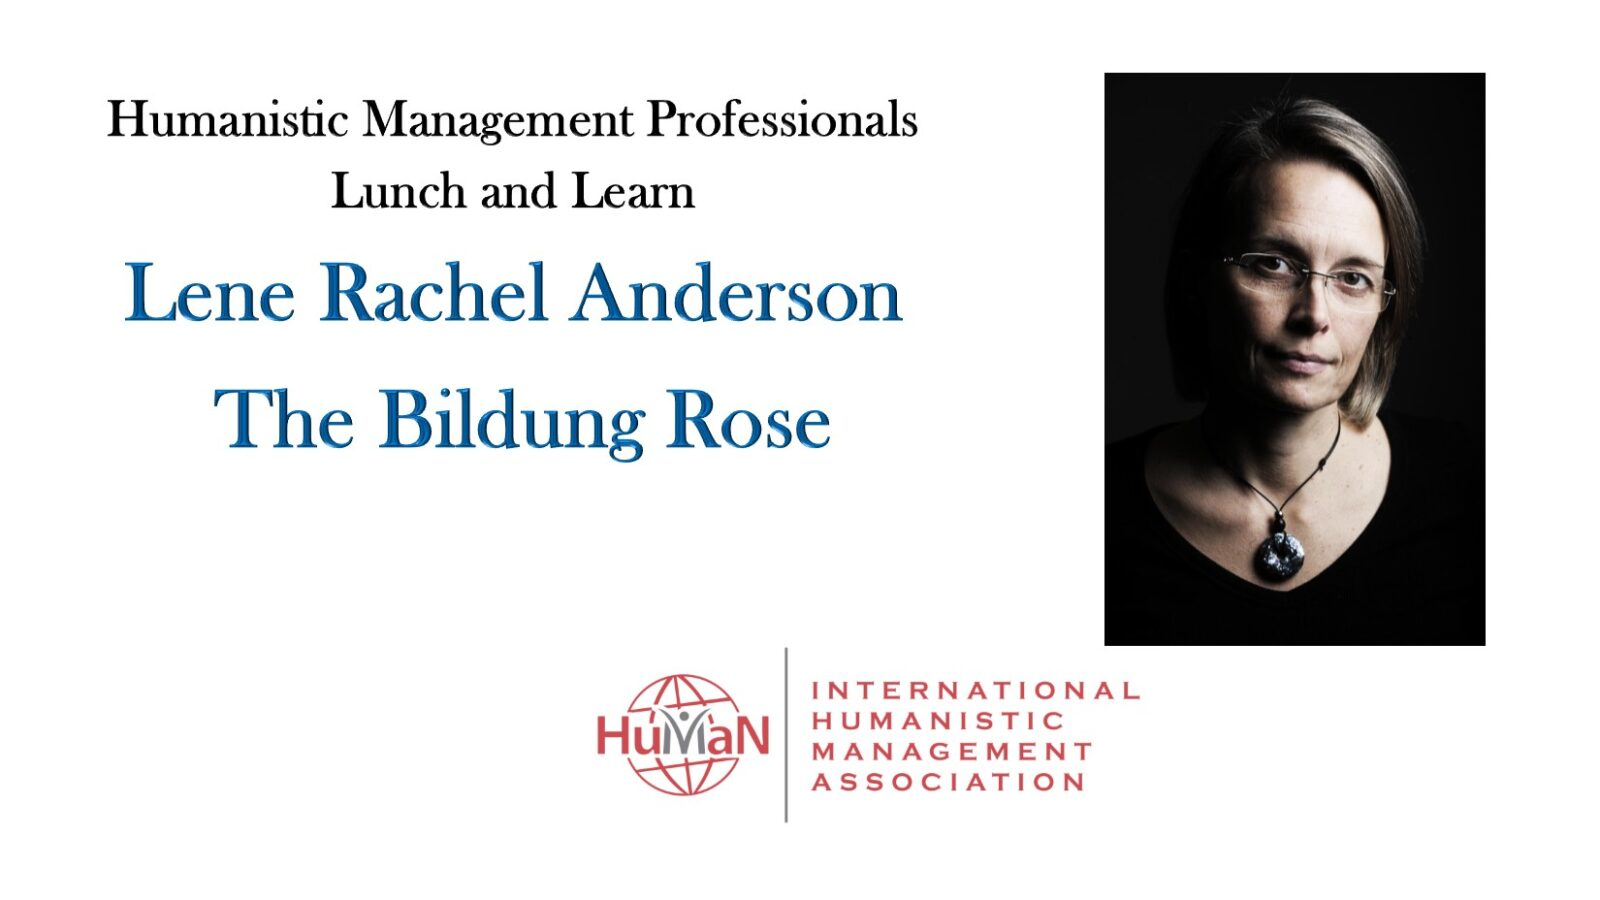 Lene Rachel Anderson on the Bildung Rose